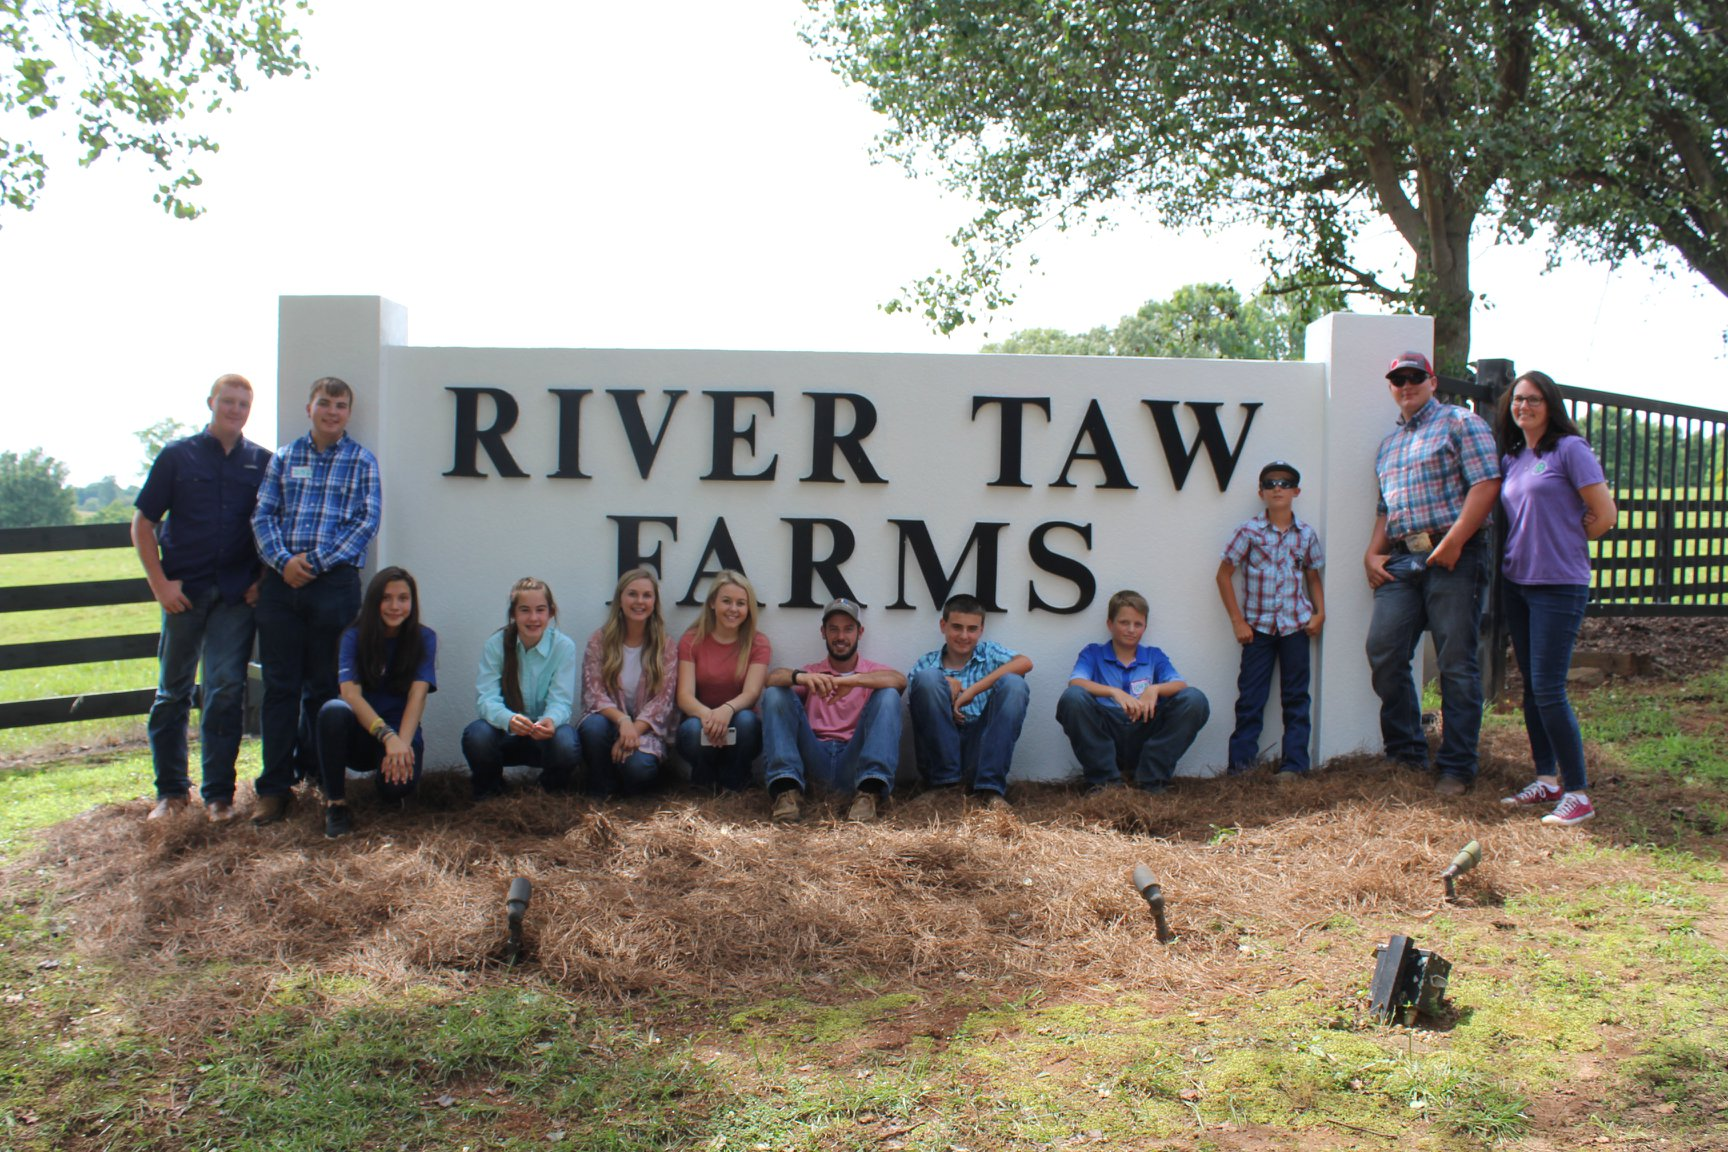 Youth in front of River Taw Farms sign